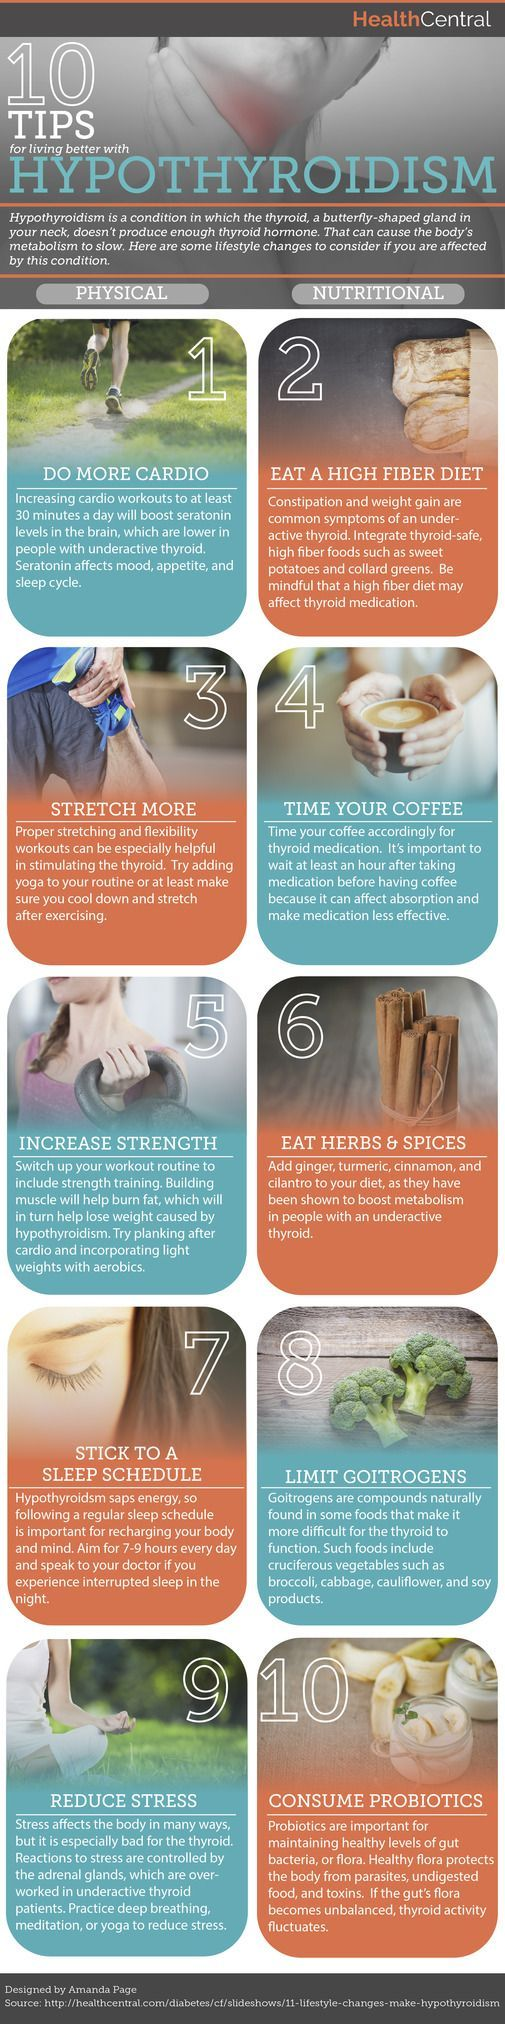 Leading an overall healthy lifestyle, that includes eating well and exercising, can help you manage hypothyroidism. But what else can you do to live well with hypothyroidism? This Inforgraphic will take you through 10tips for living better with hypothyroidism! Source: https://s-media-cache-ak0.pinimg.com